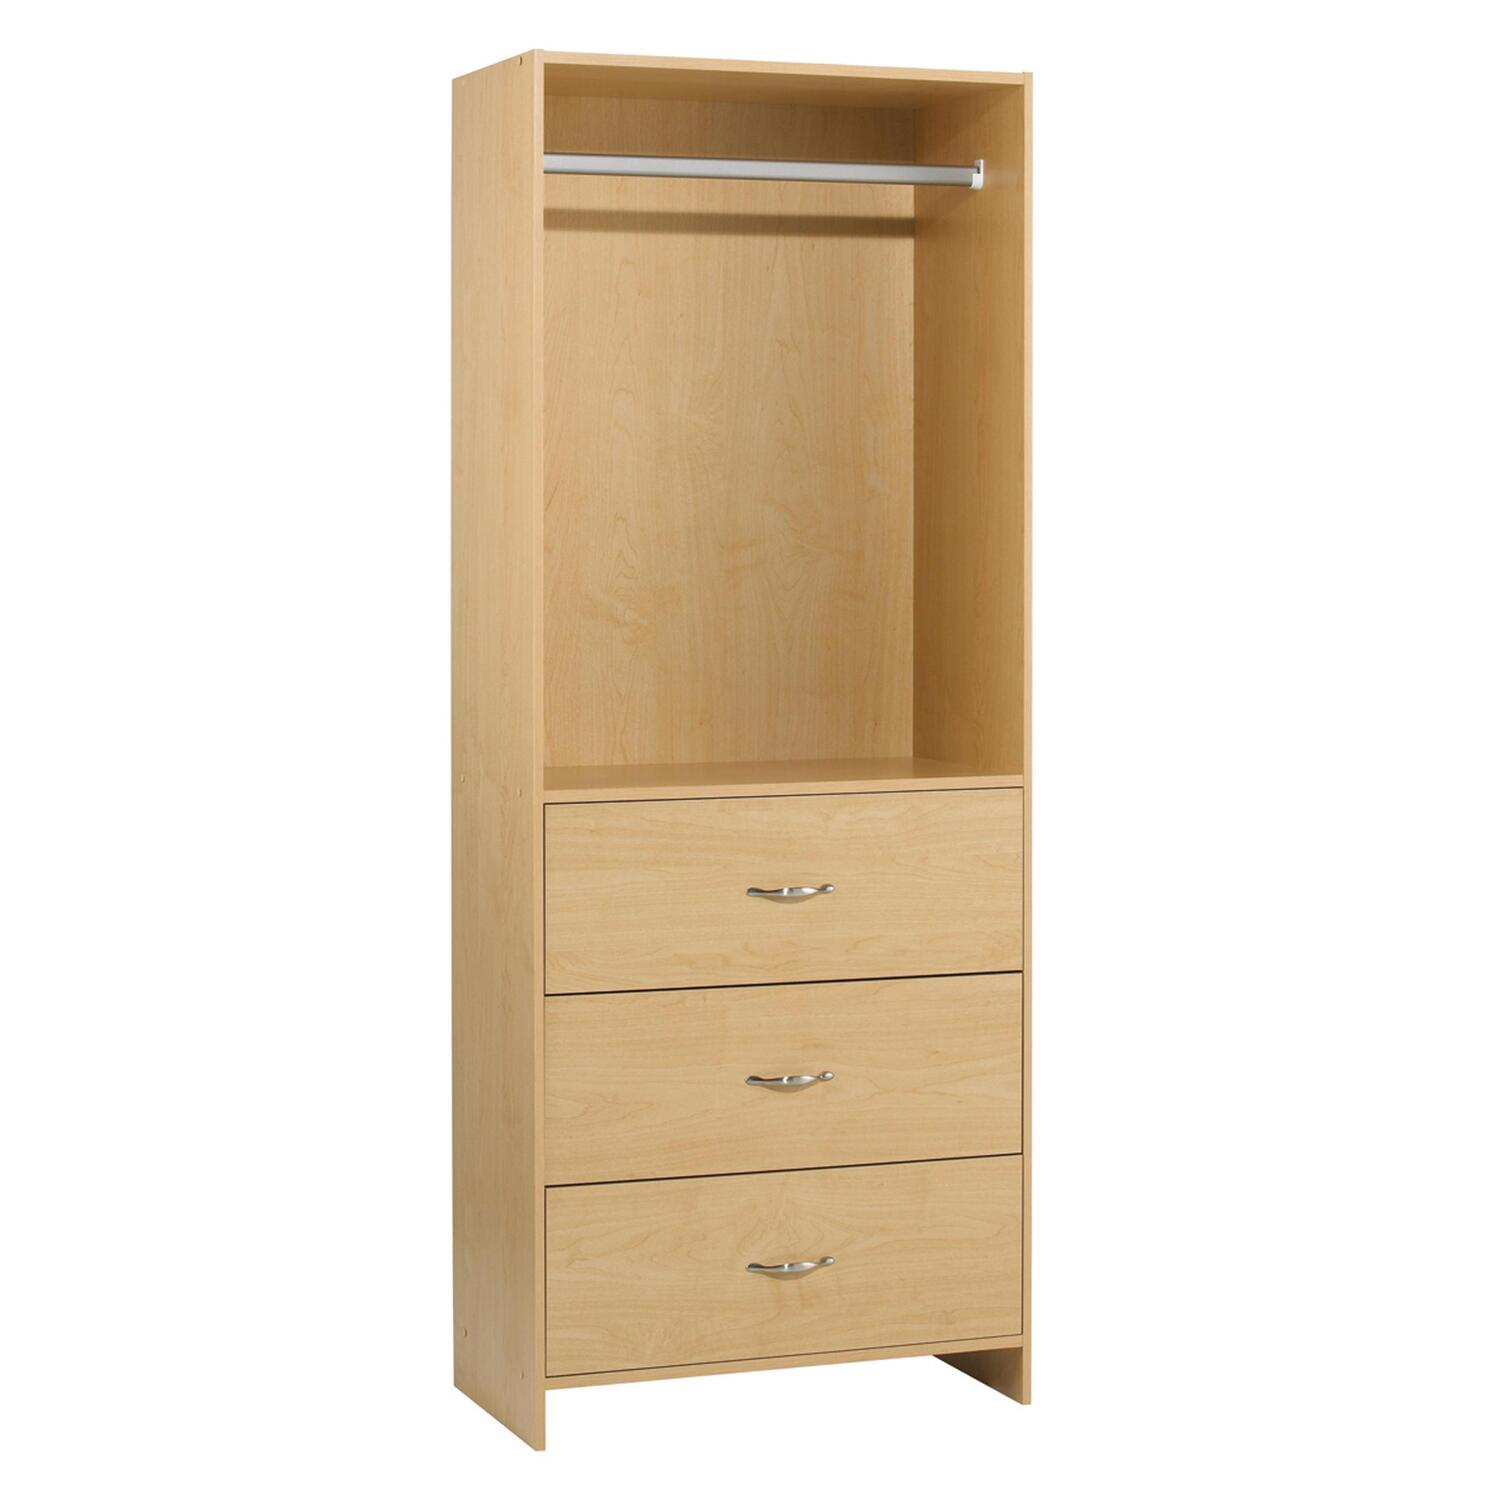 just three one all optionalshoeshelvesnodrawers of closetmaid s drawers for to organizer buy what plans costs build it closet you diy can kits our drawer with